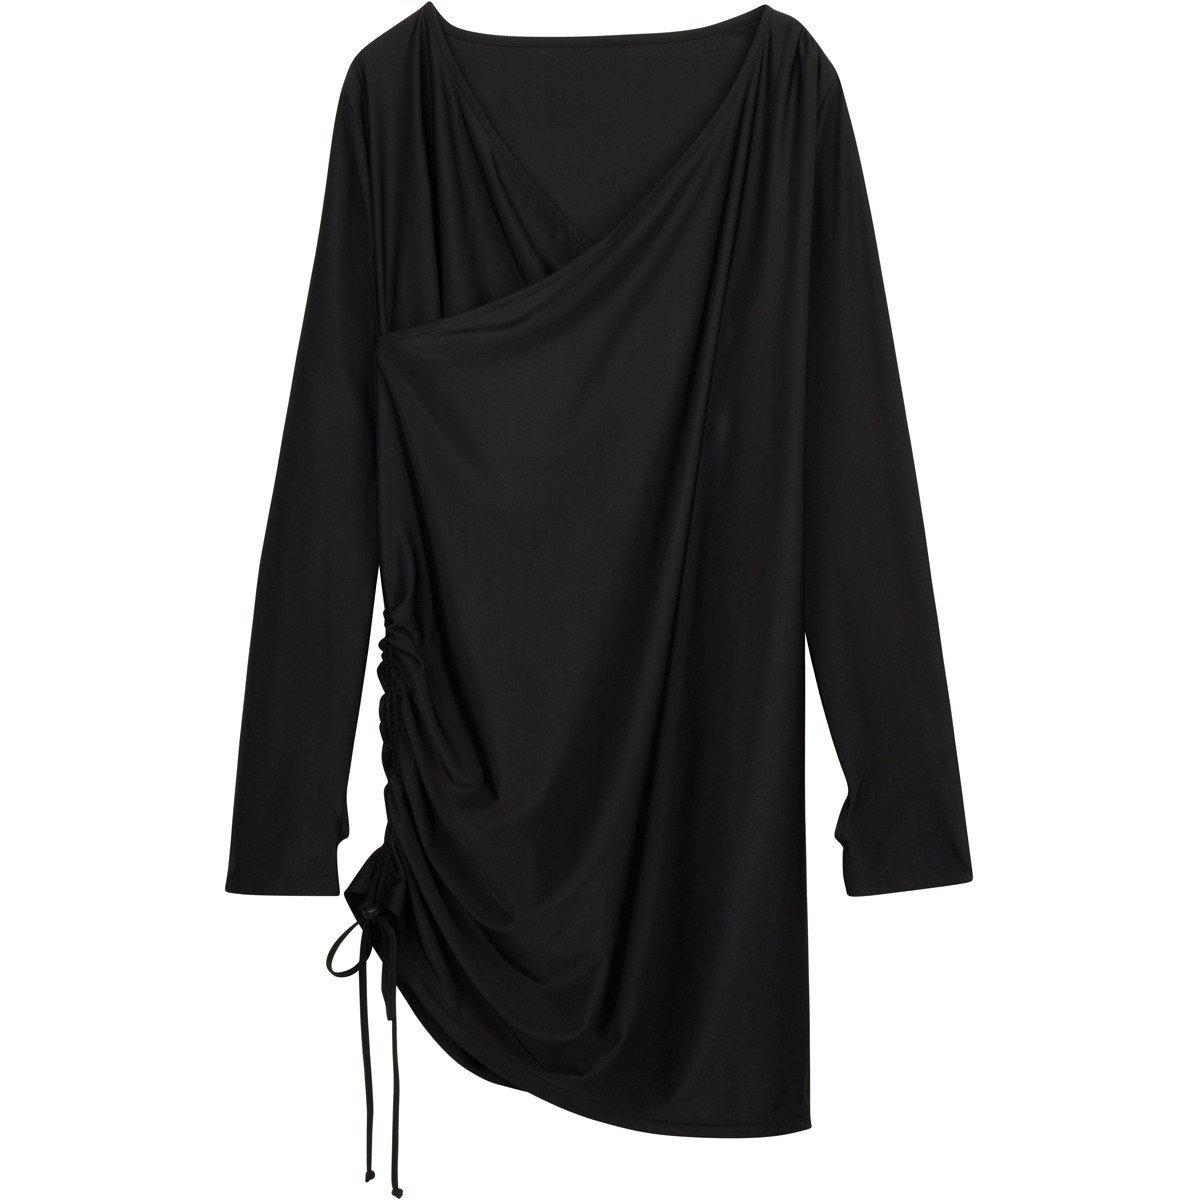 womens sun protection swimsuit cover ups black